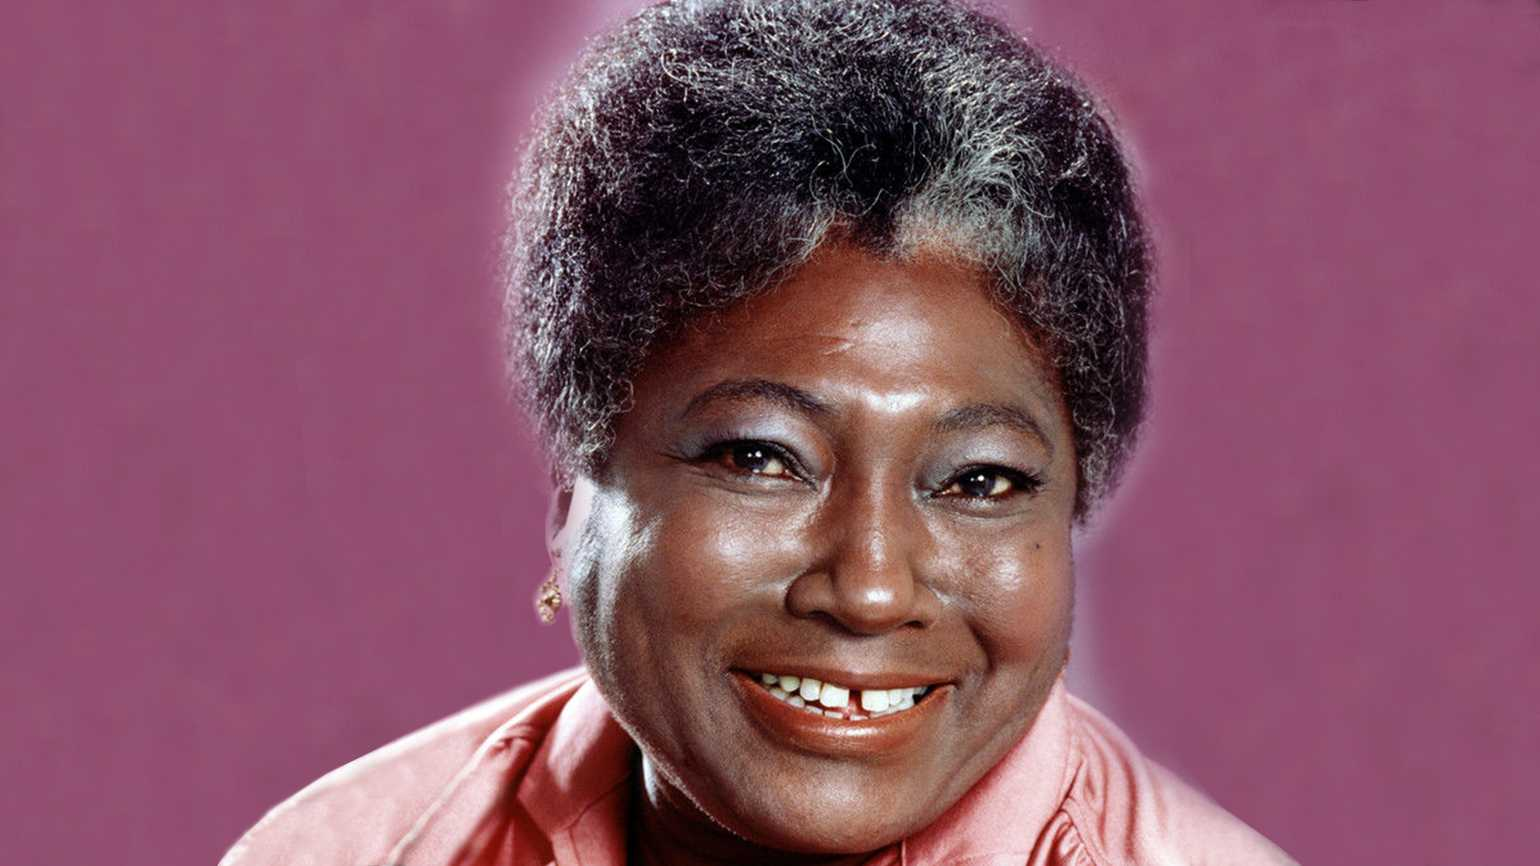 Actress Esther Rolle, star of the popular 1970s sitcom Good Times